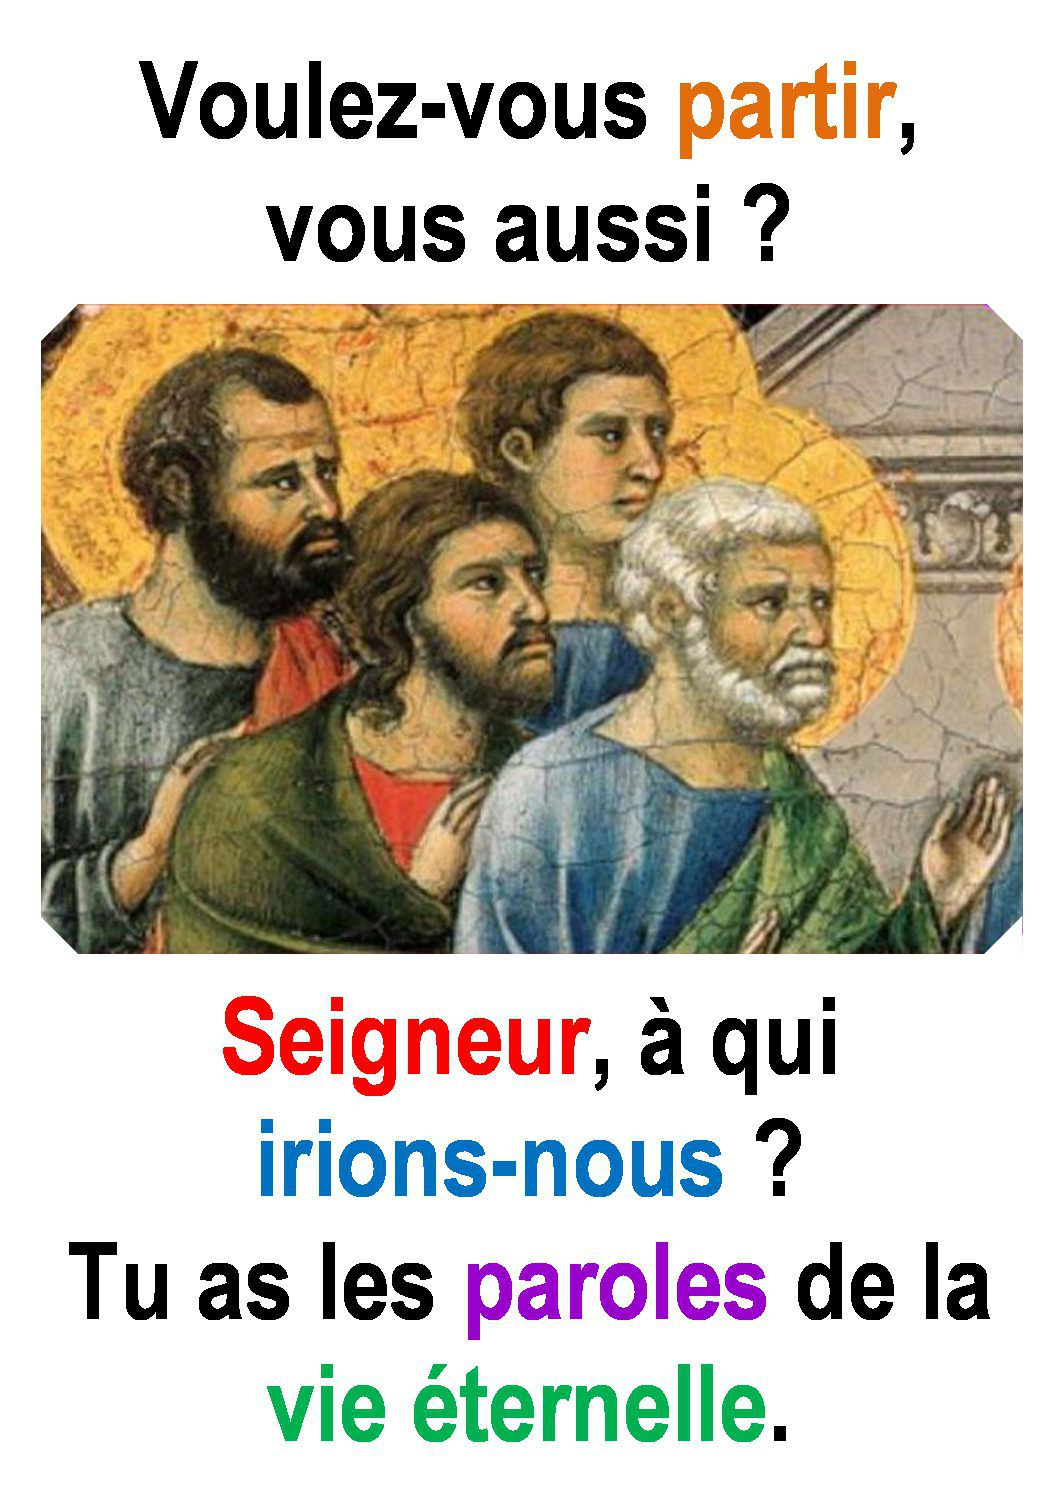 Evangile du 24 Avril « Tu as les paroles de la vie éternelle » (Jn 6, 60-69) #parti2zero #evangile